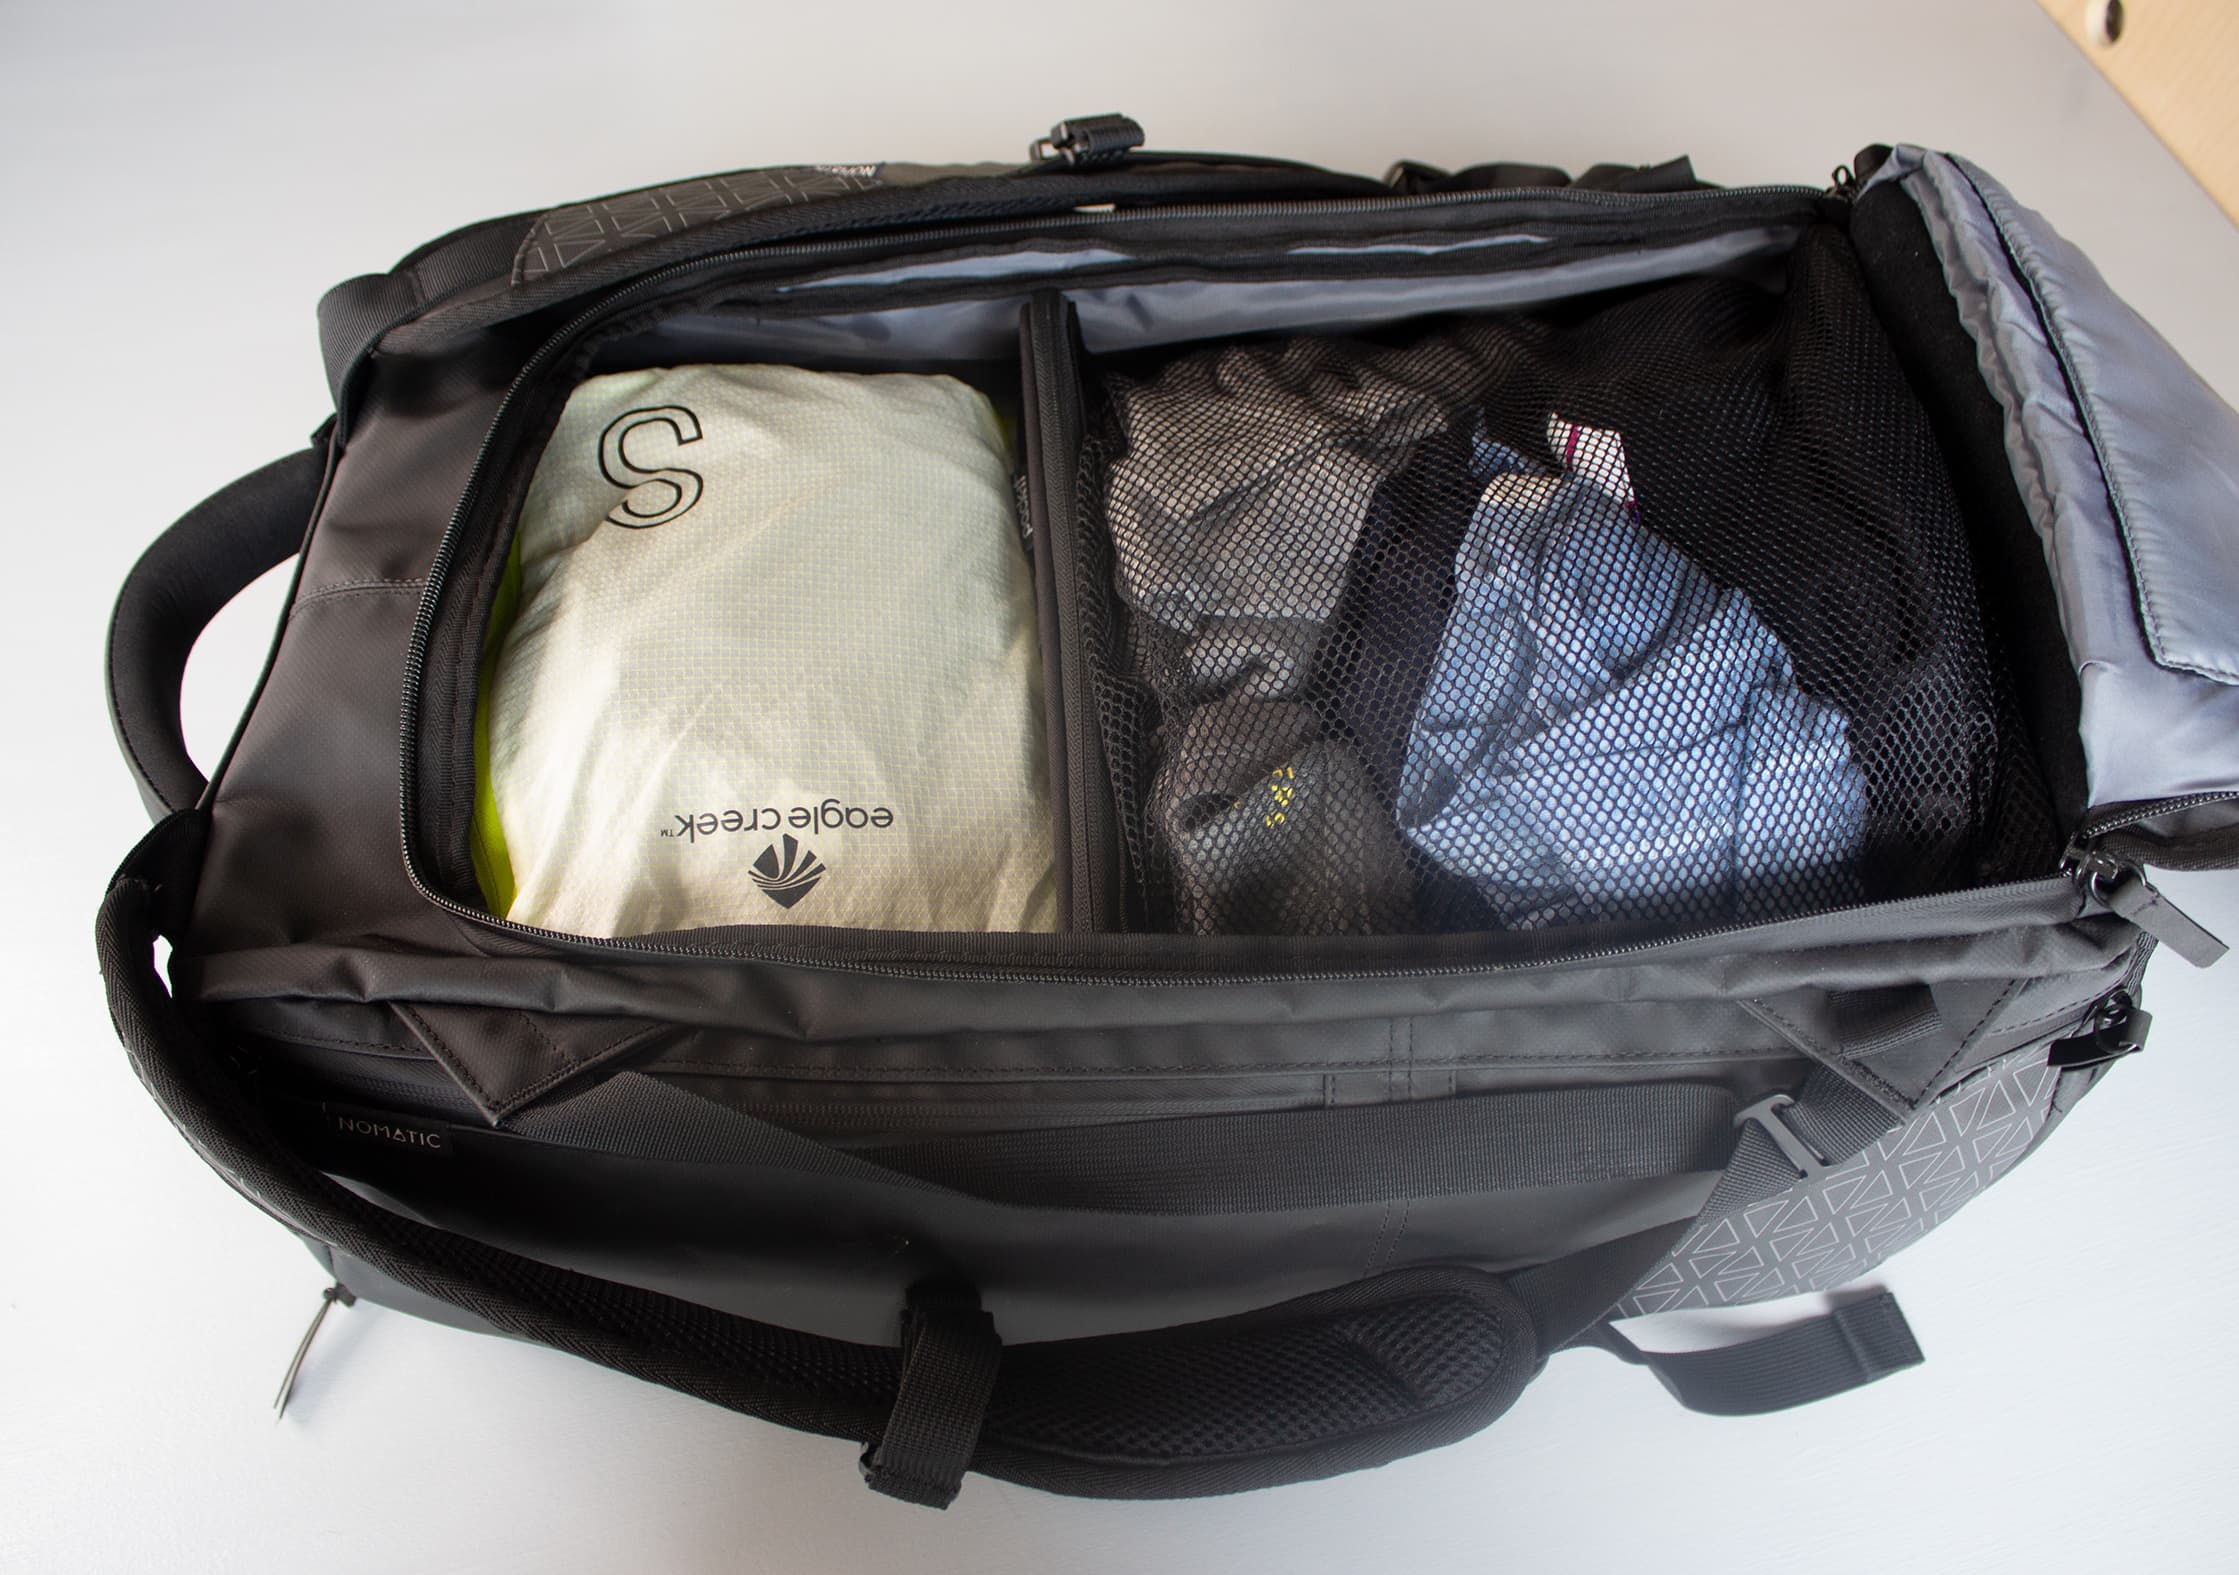 NOMATIC Travel Bag Packed